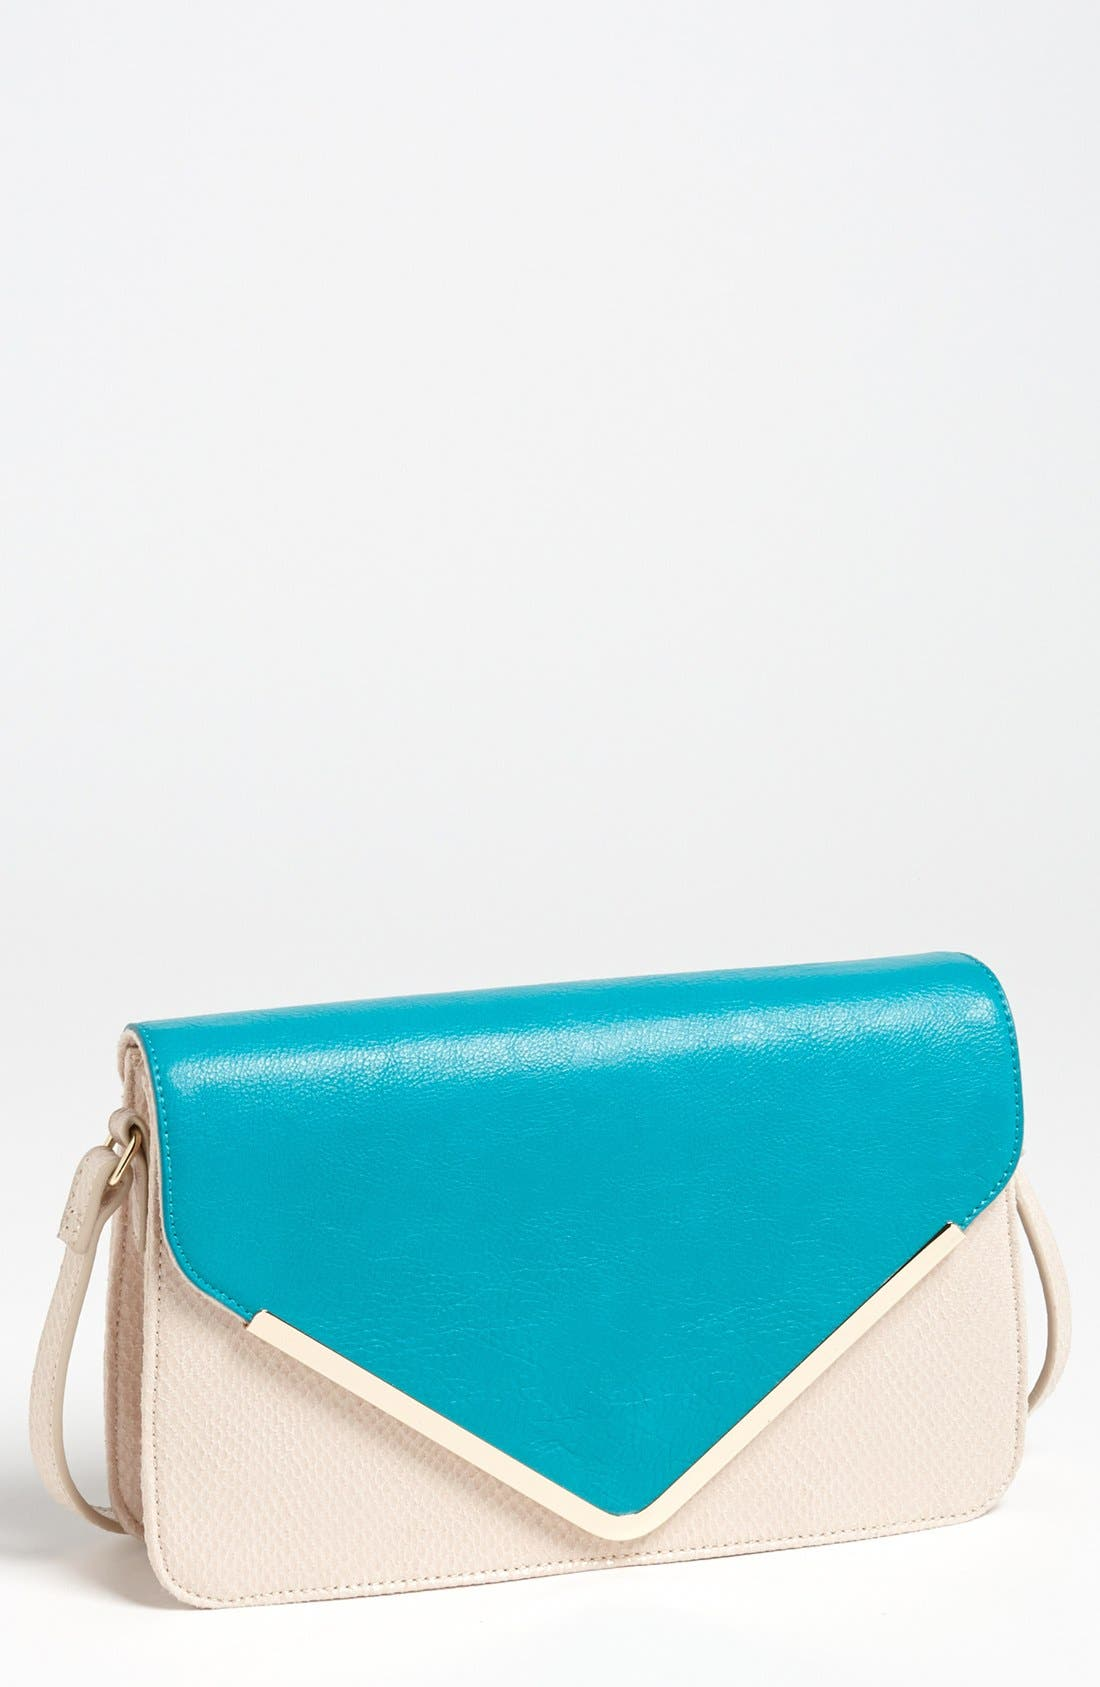 Alternate Image 1 Selected - Izzy & Ali 'Giselle' Faux Leather Shoulder Bag